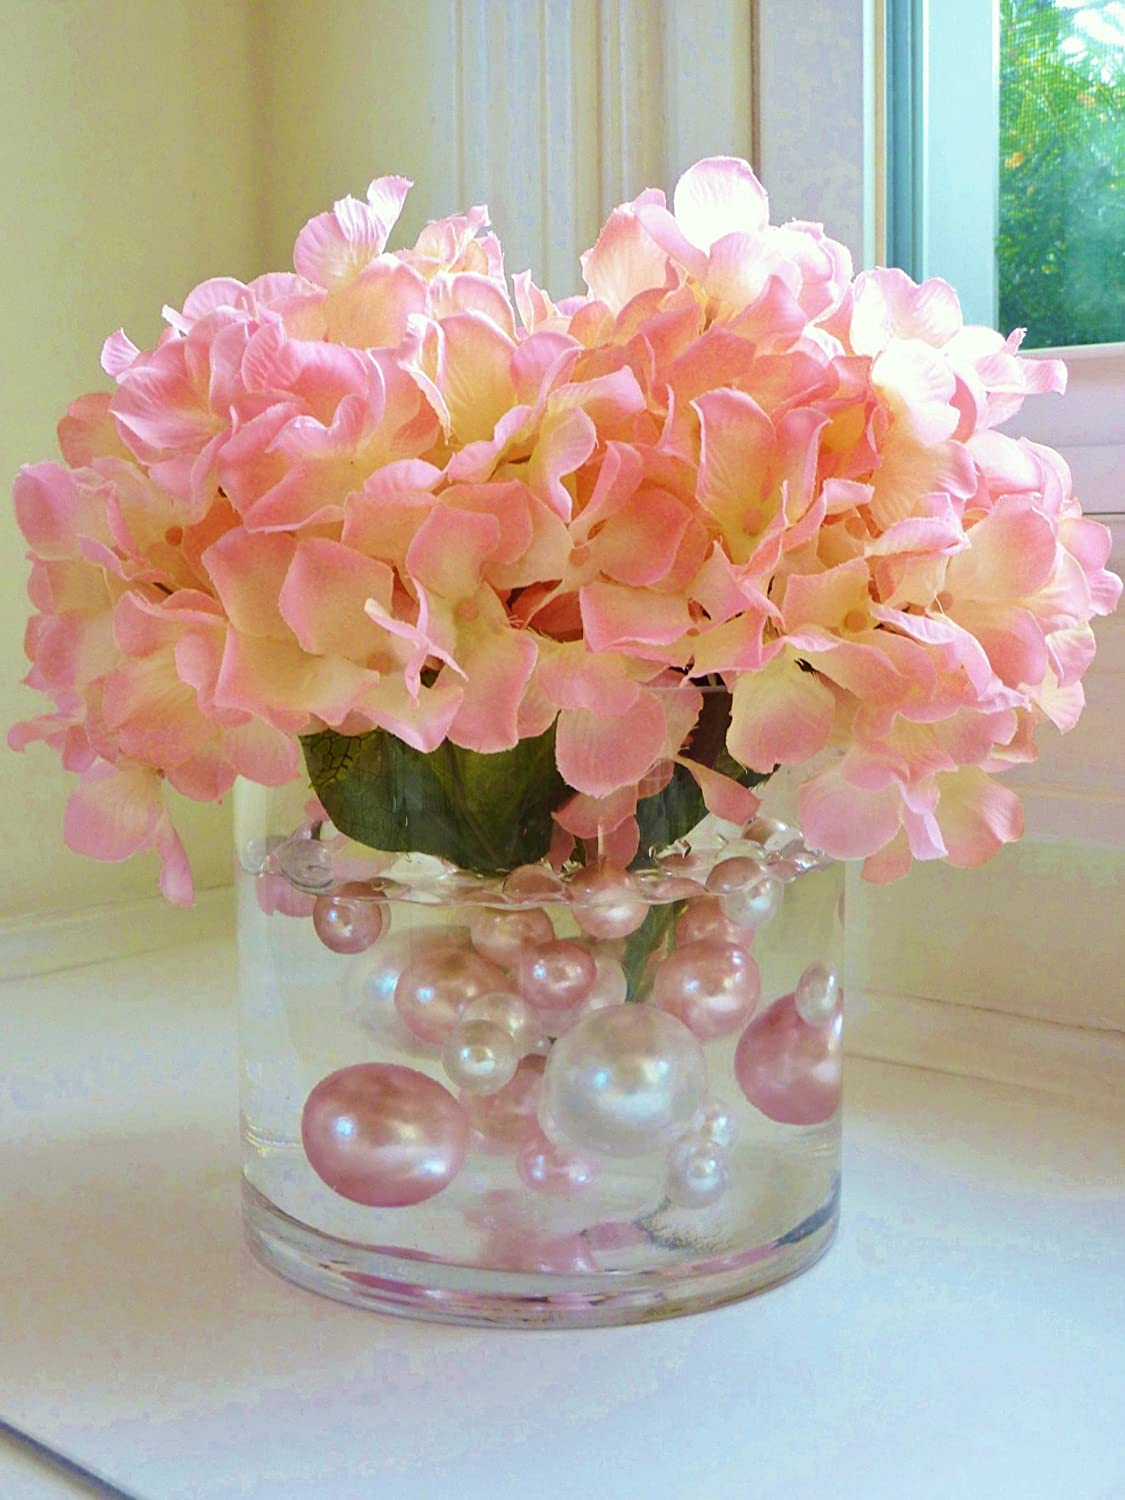 80 Jumbo & Assorted Sizes All Light Pink Pearls Value Pack Vase Fillers